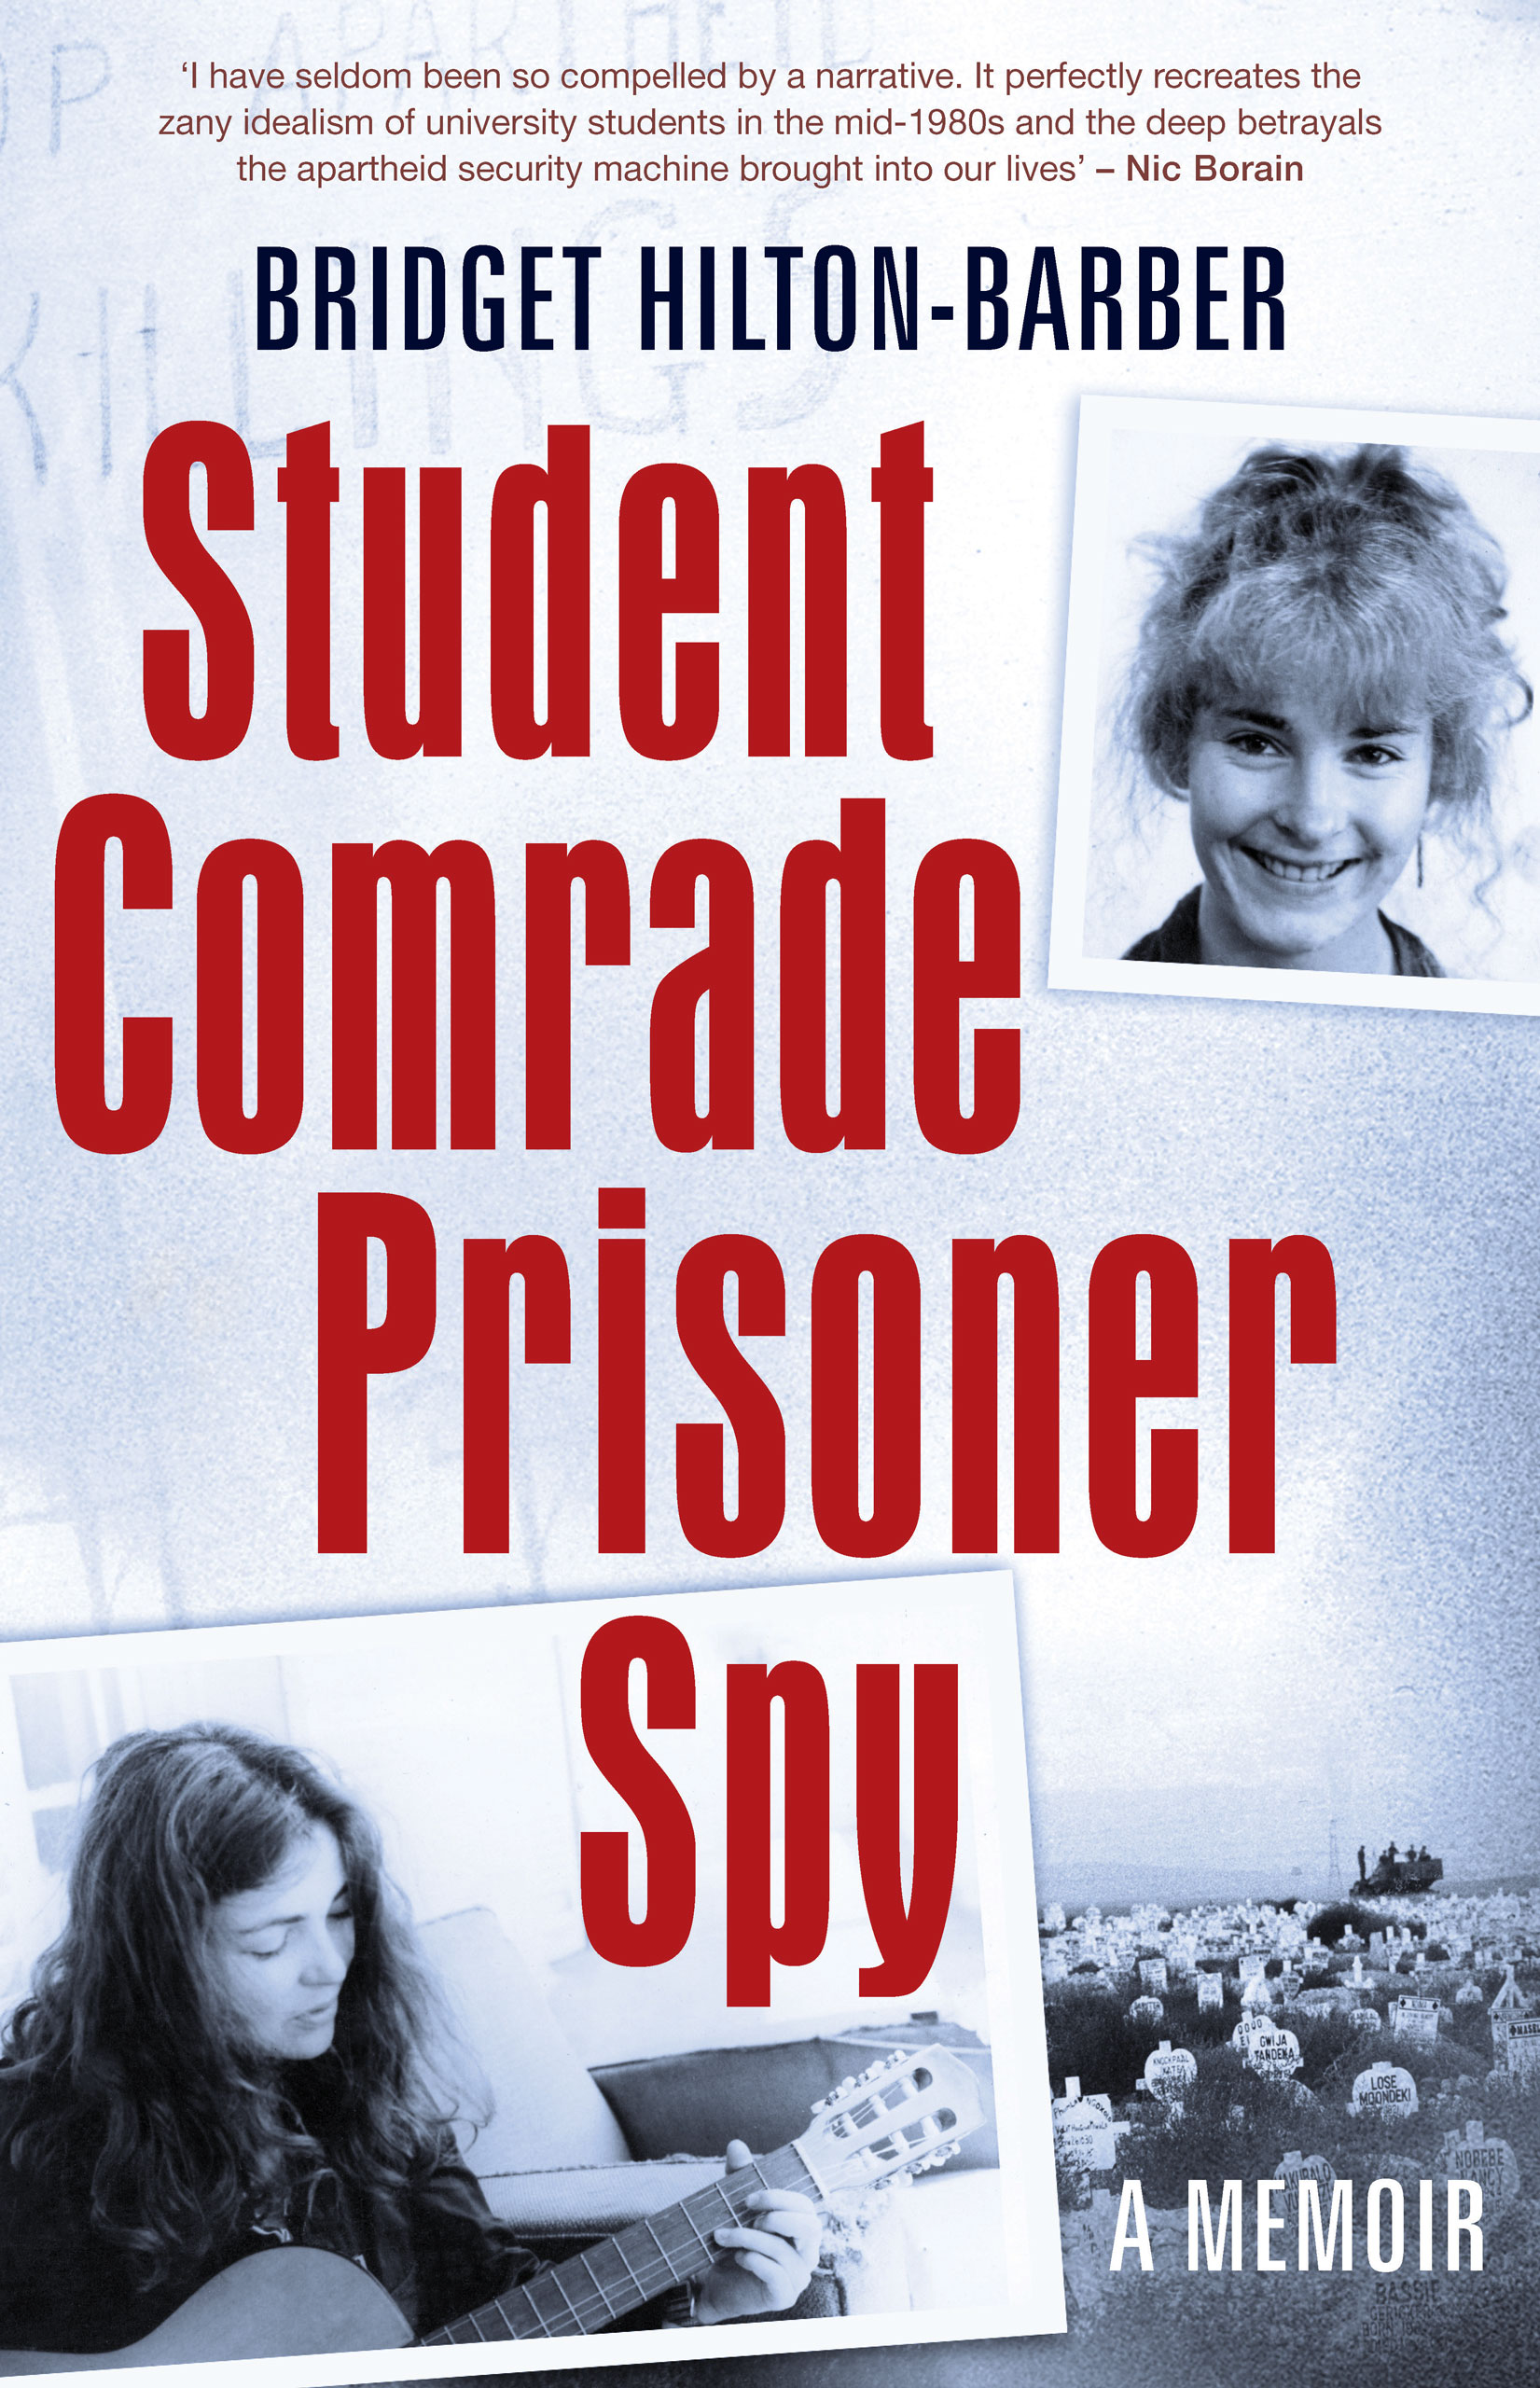 Picture of Student comrade prisoner spy